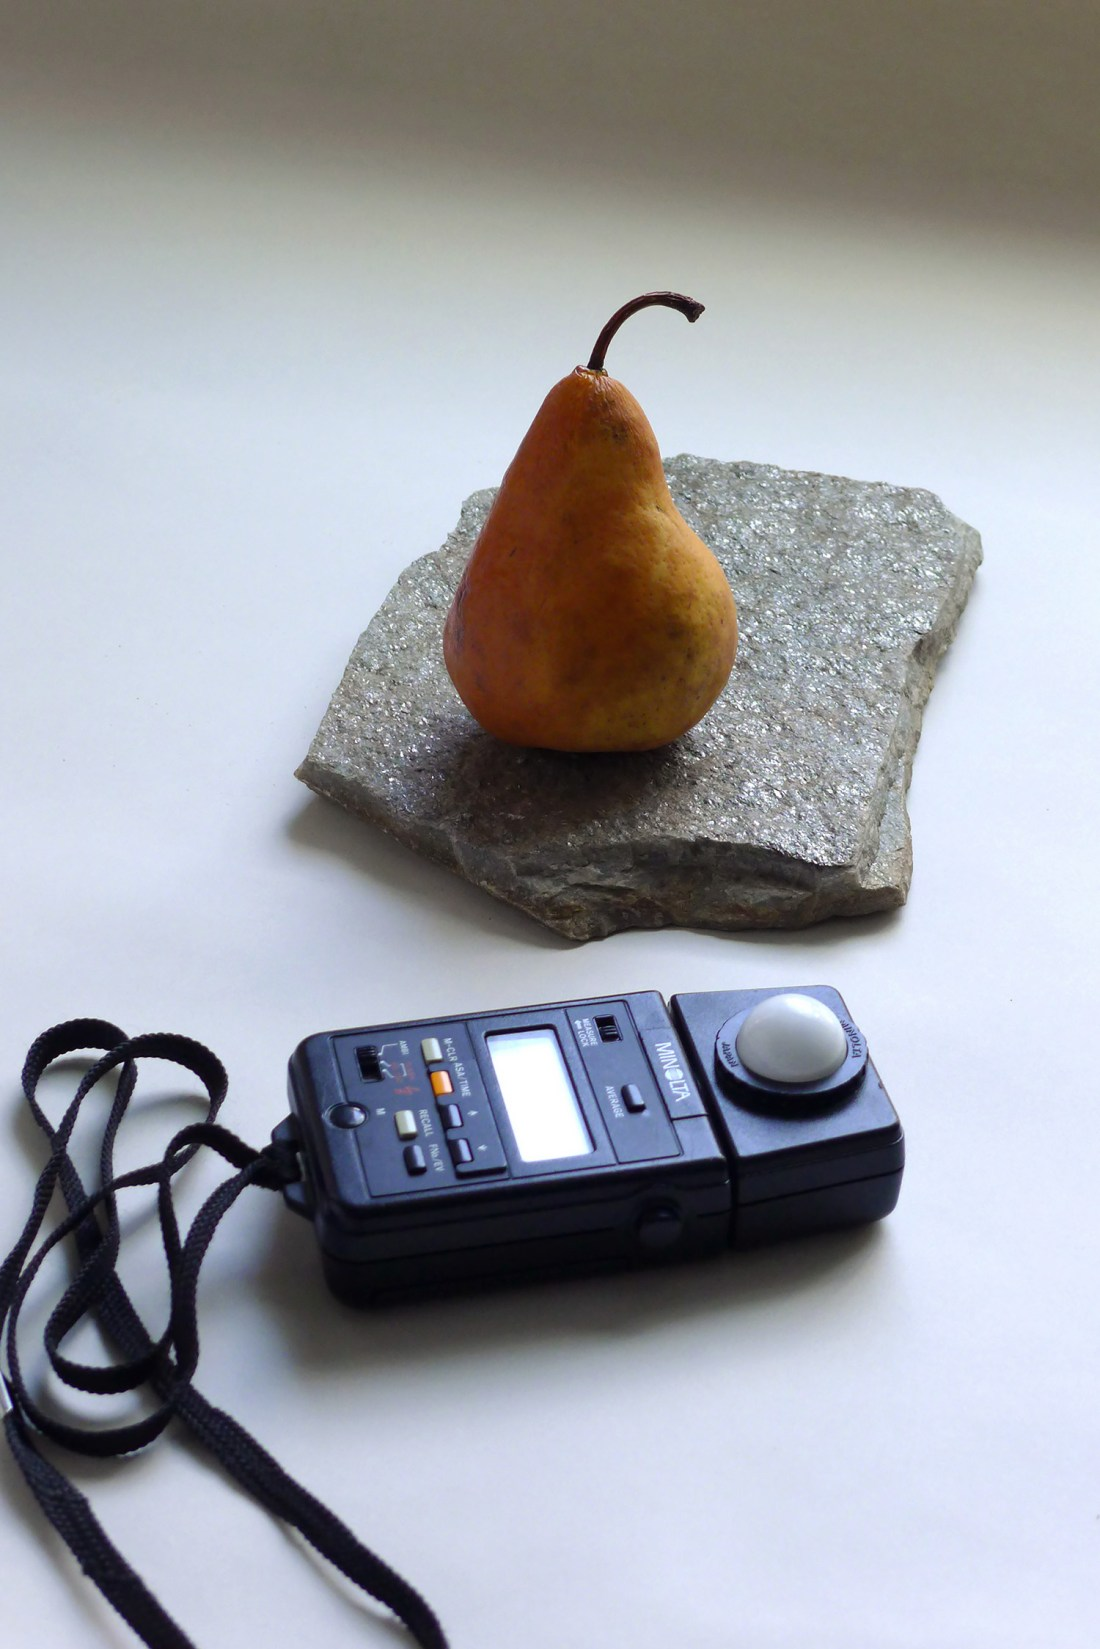 Product Photography: Pear and Light Meter